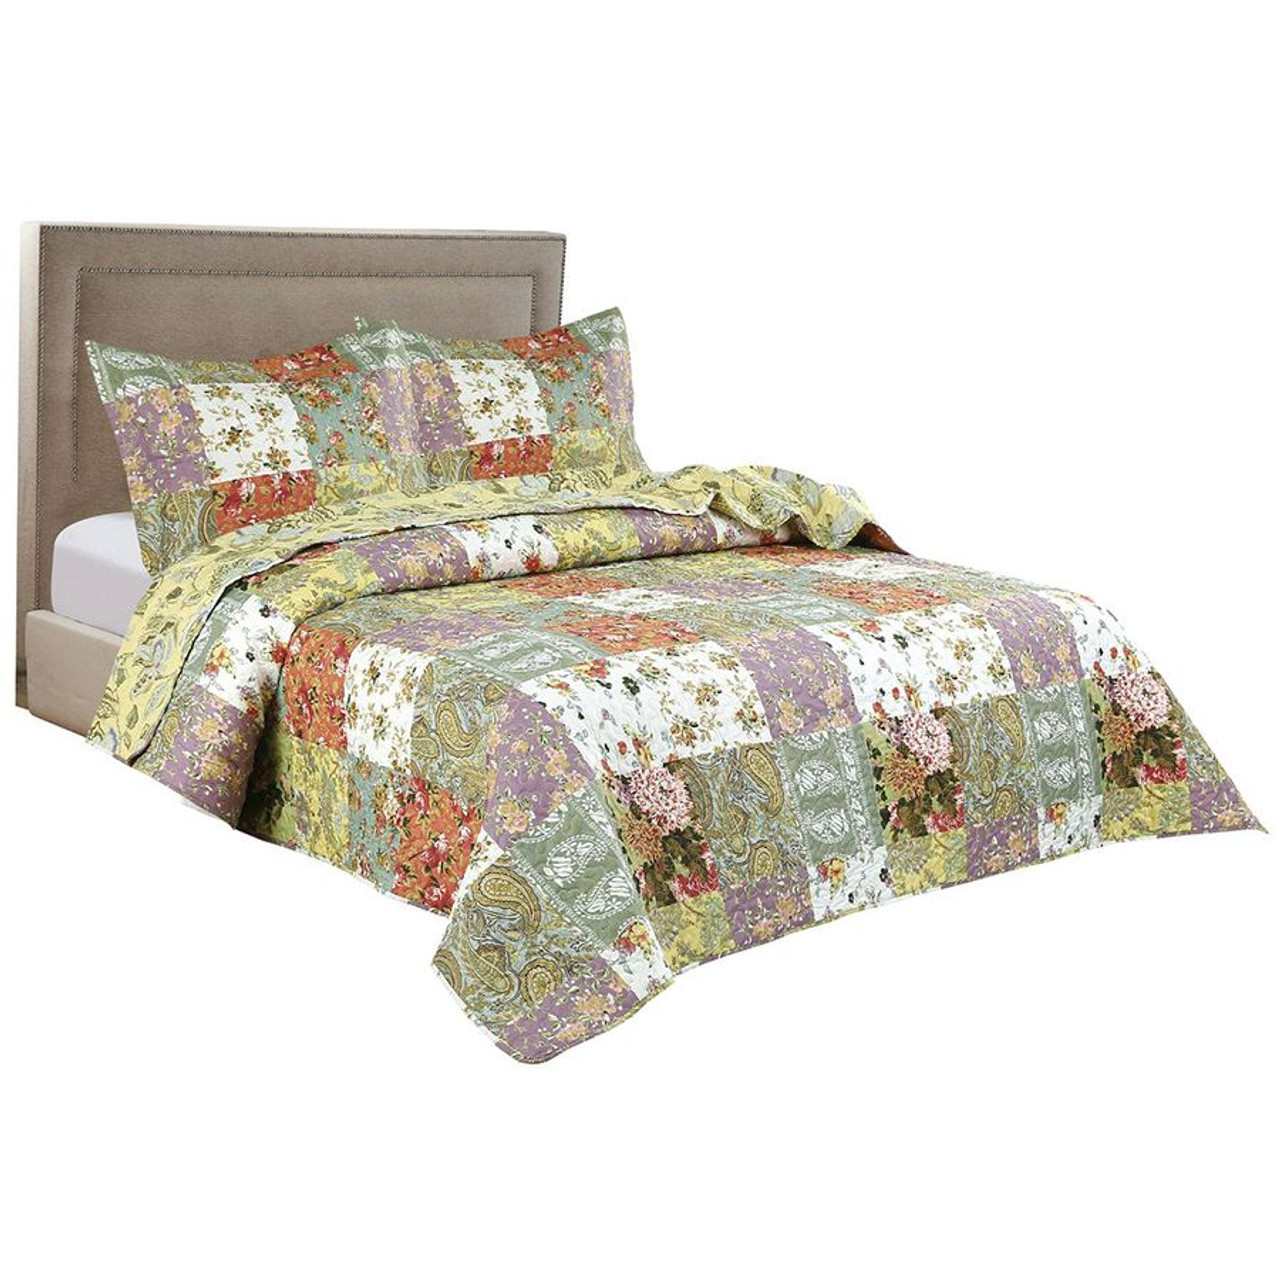 3 PC Arrow Stitched Pinsonic Reversible All Season Oversized Bedspread